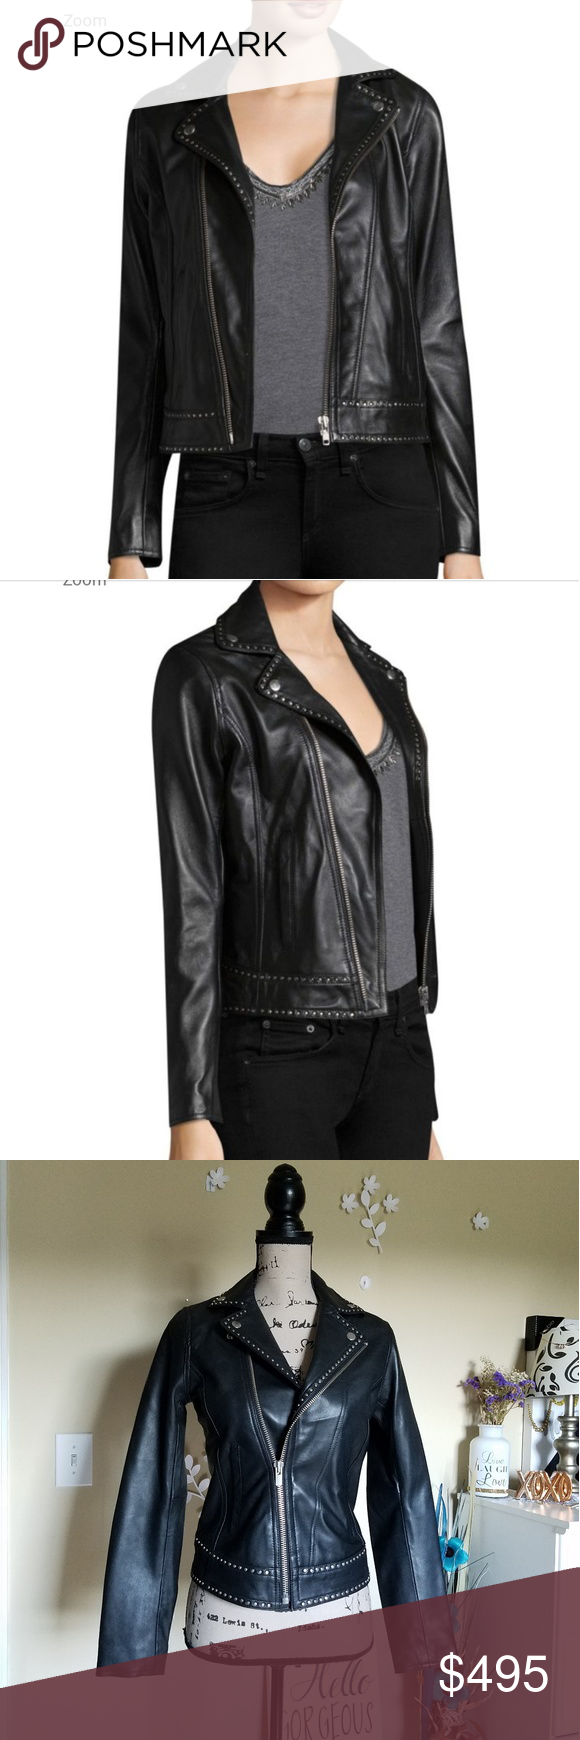 ️🖤The Kooples Leather Moto Jacket🖤🖤 NWT!! Authentic women